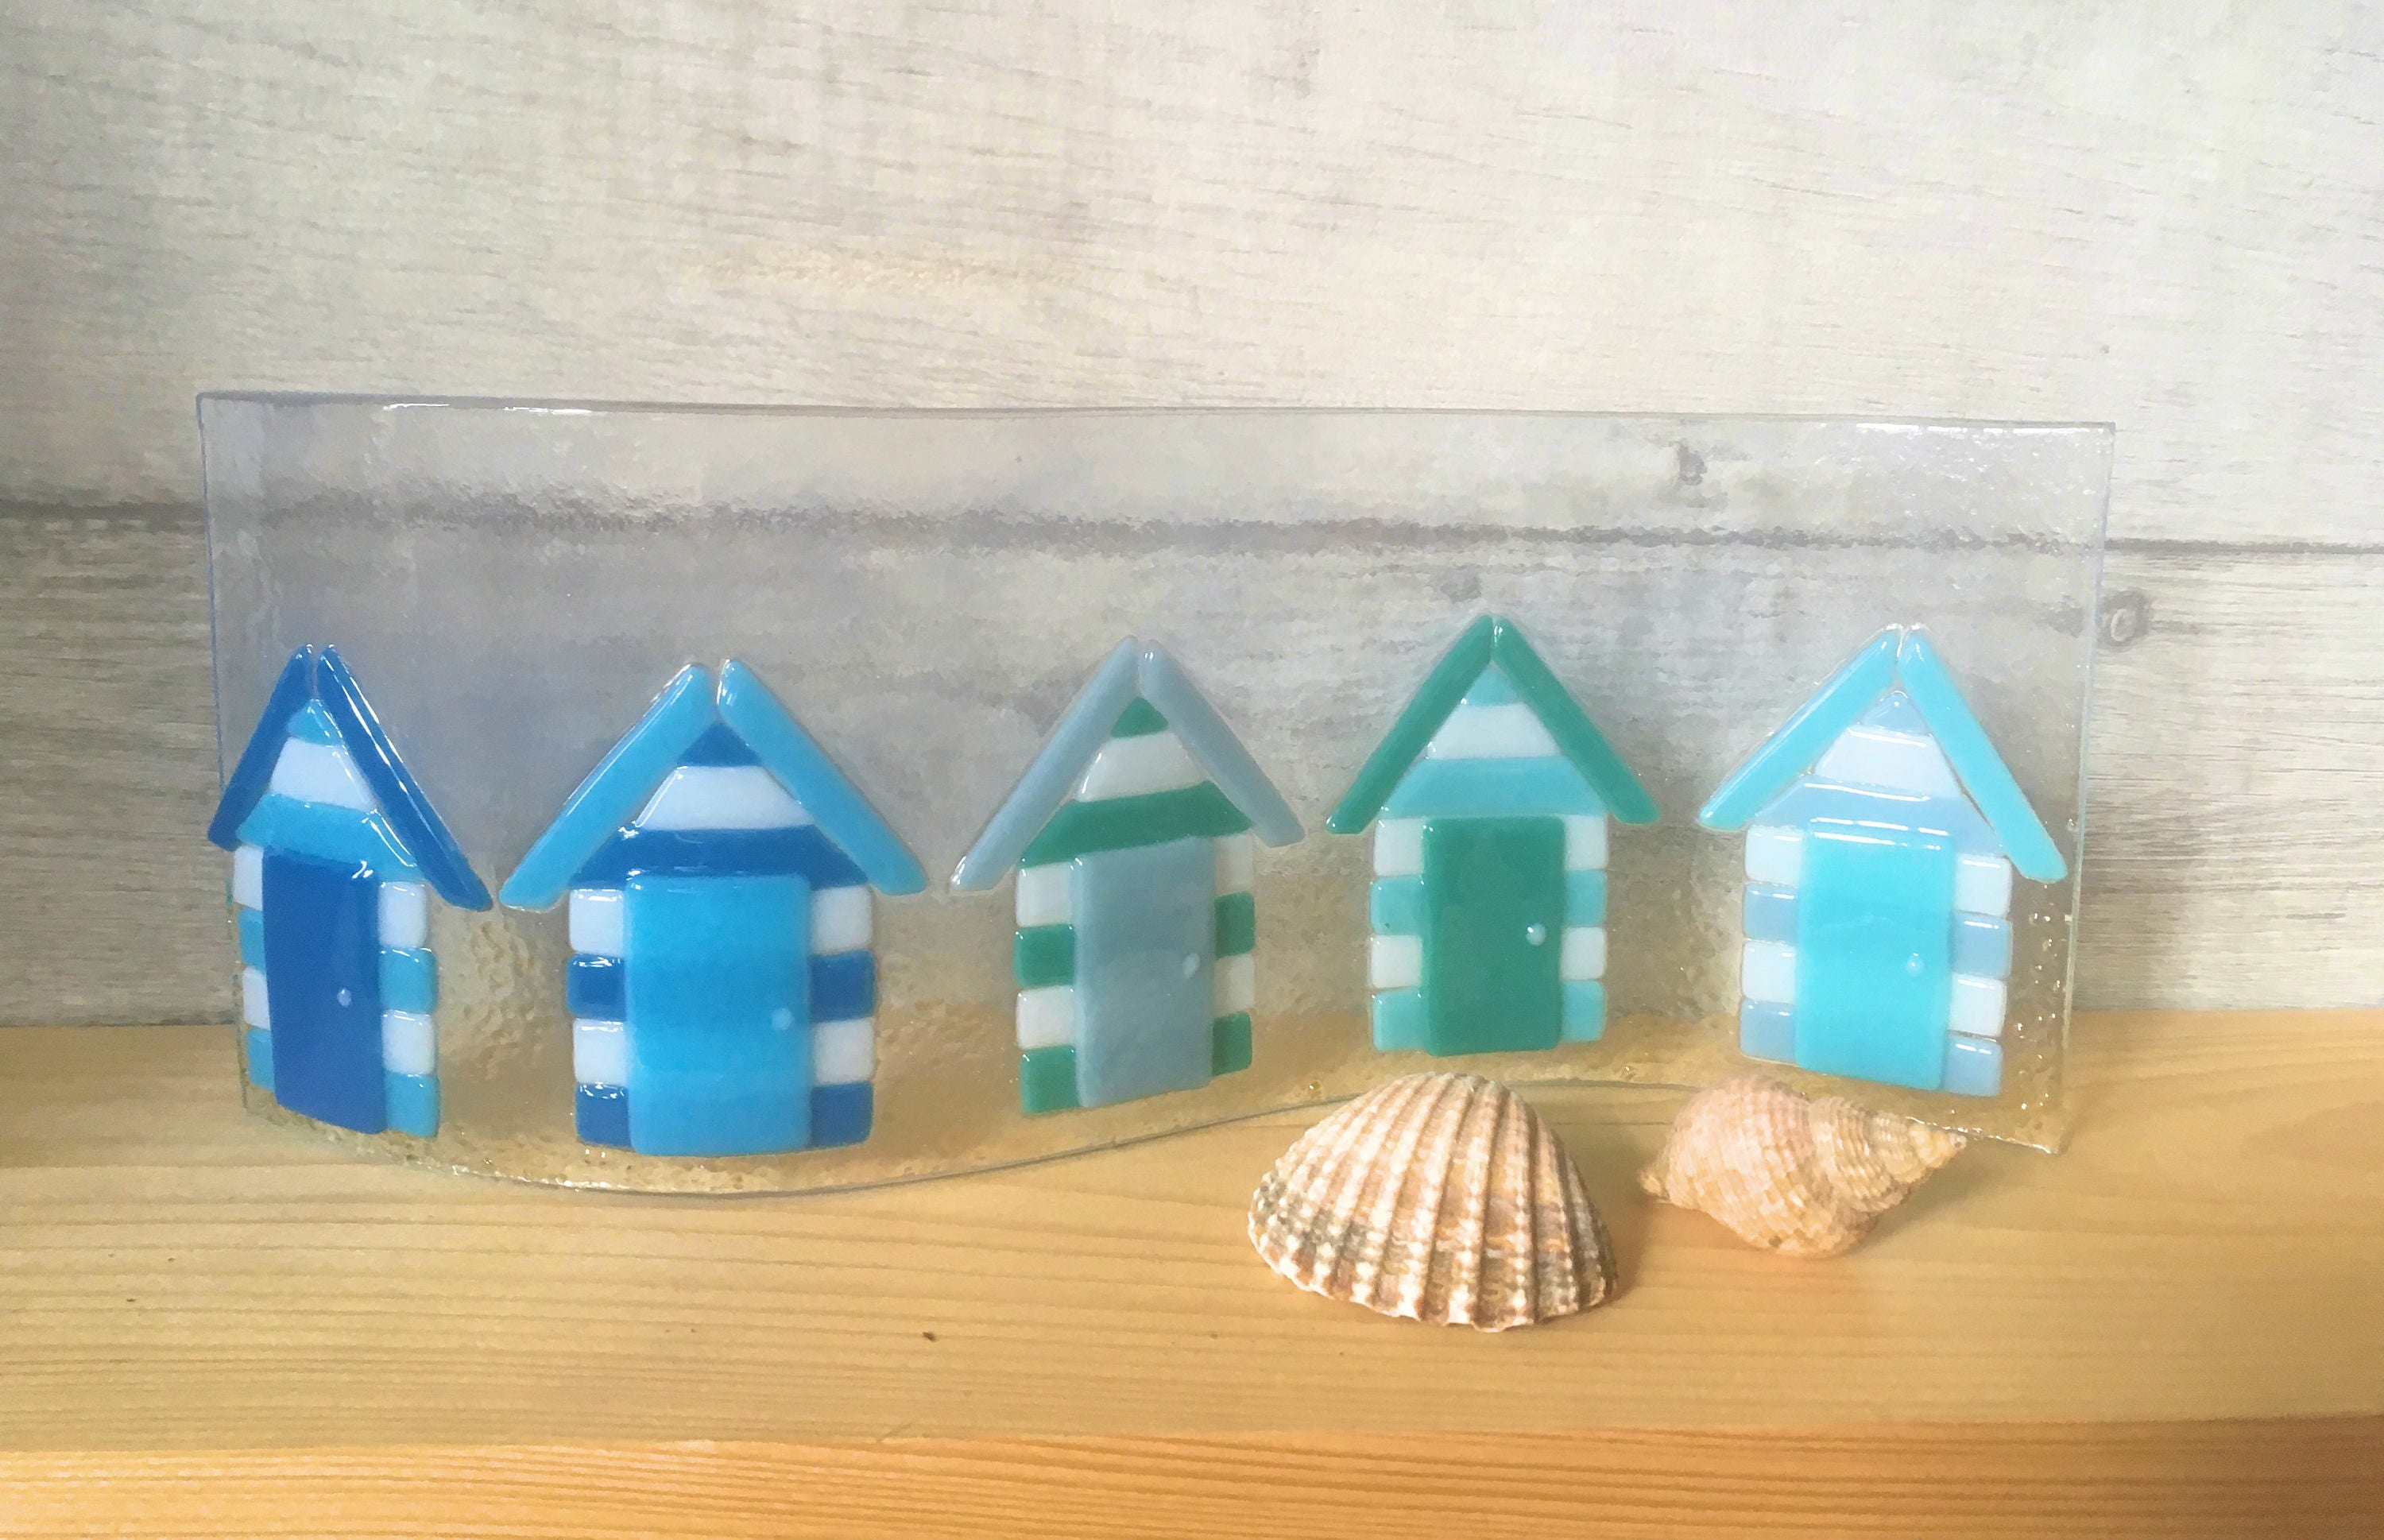 Row of beach huts curved fused glass table clock -  Zoom